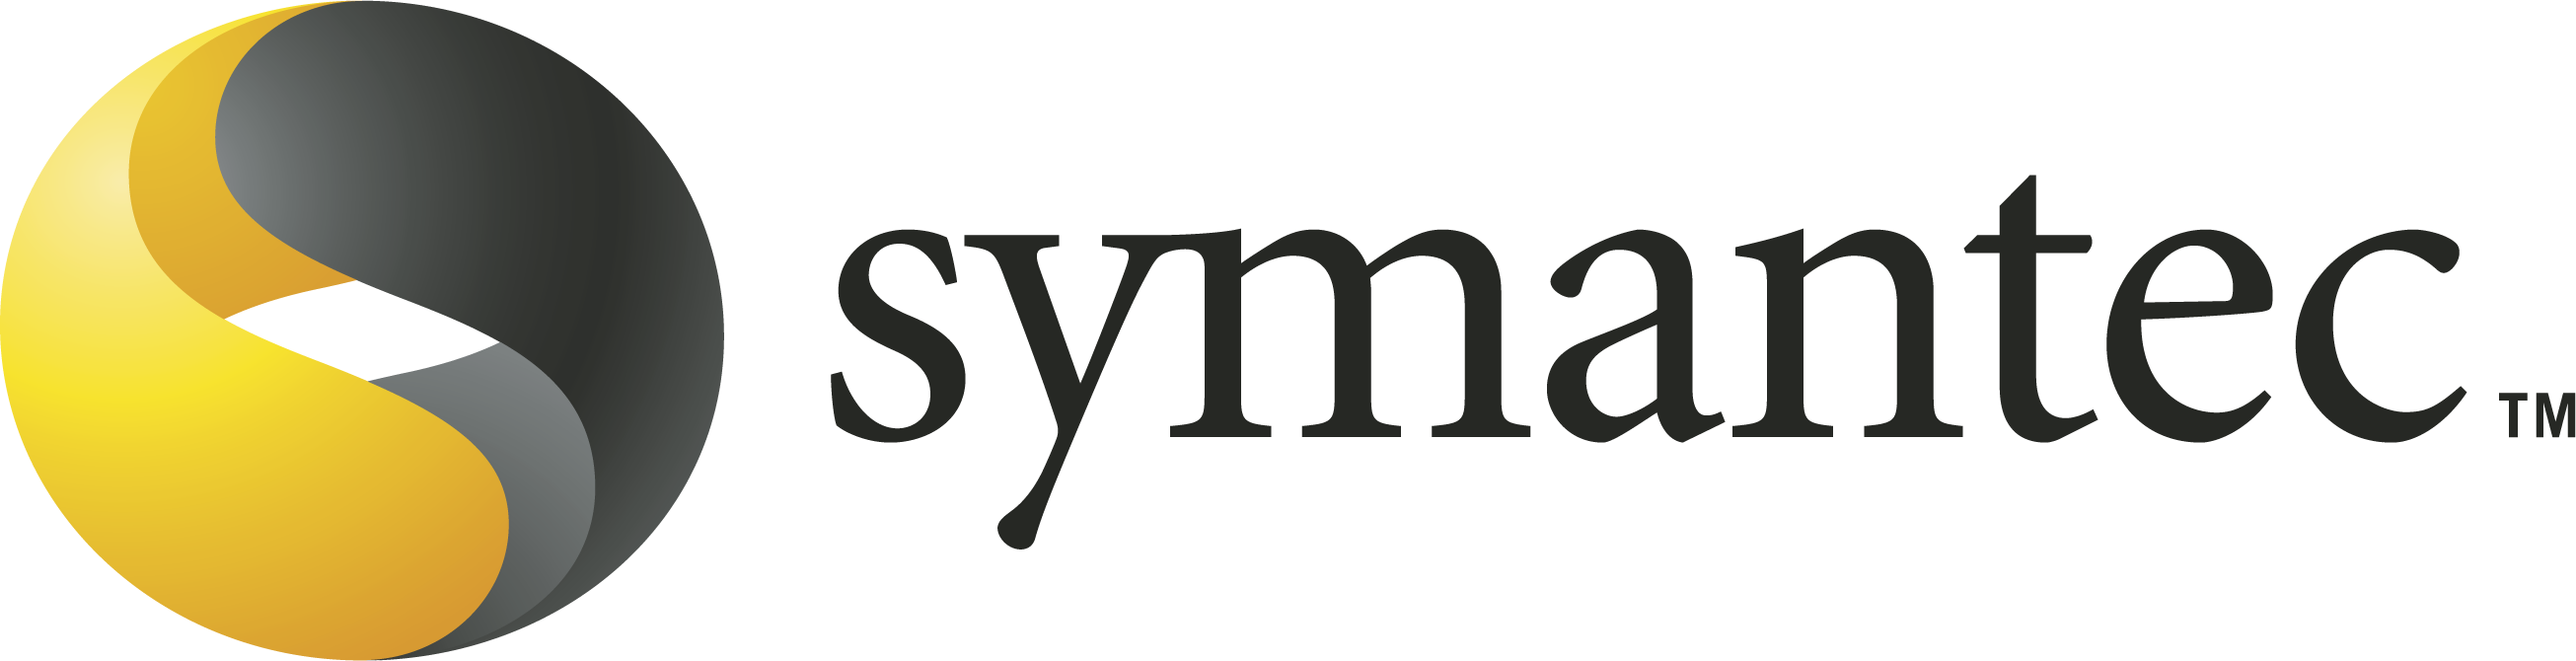 Symantec - Logopedia, the logo and branding site